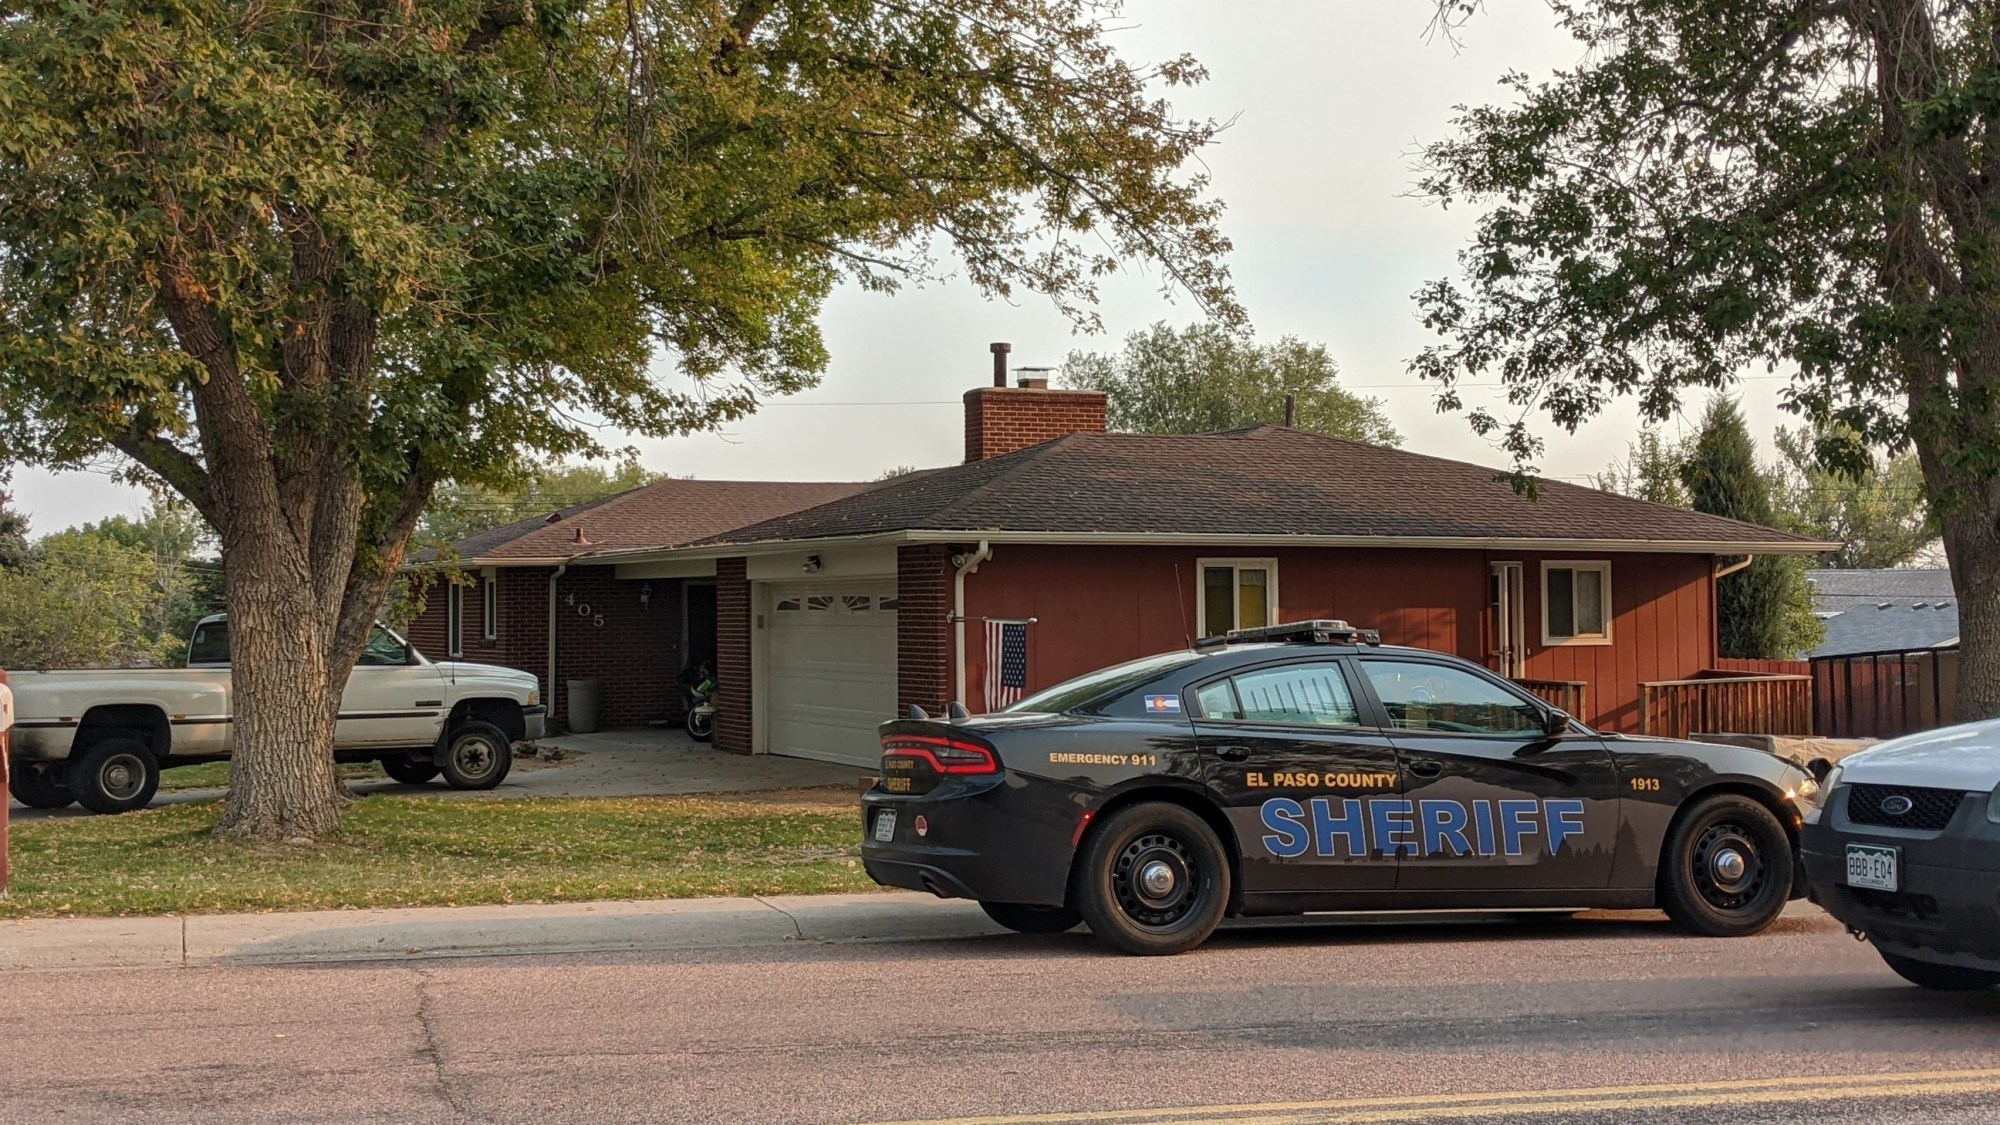 Deputies on the scene of a shooting in southern Colorado Springs Wednesday morning. / Brandon Seffrood - FOX21 News